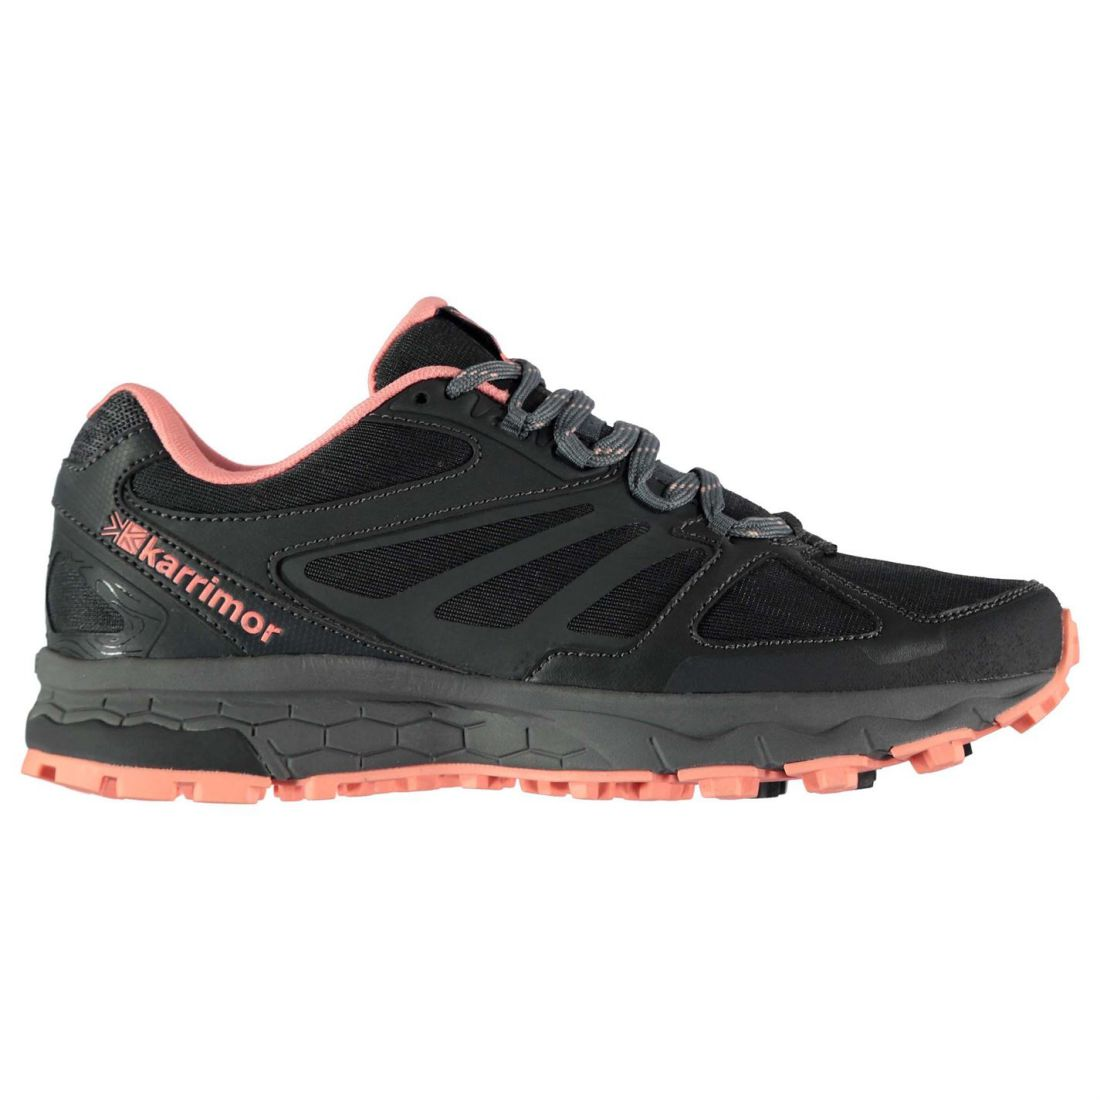 ed8301e1e209f Karrimor Womens Tempo 5 Trail Running Shoes Lace Up Breathable Padded Ankle